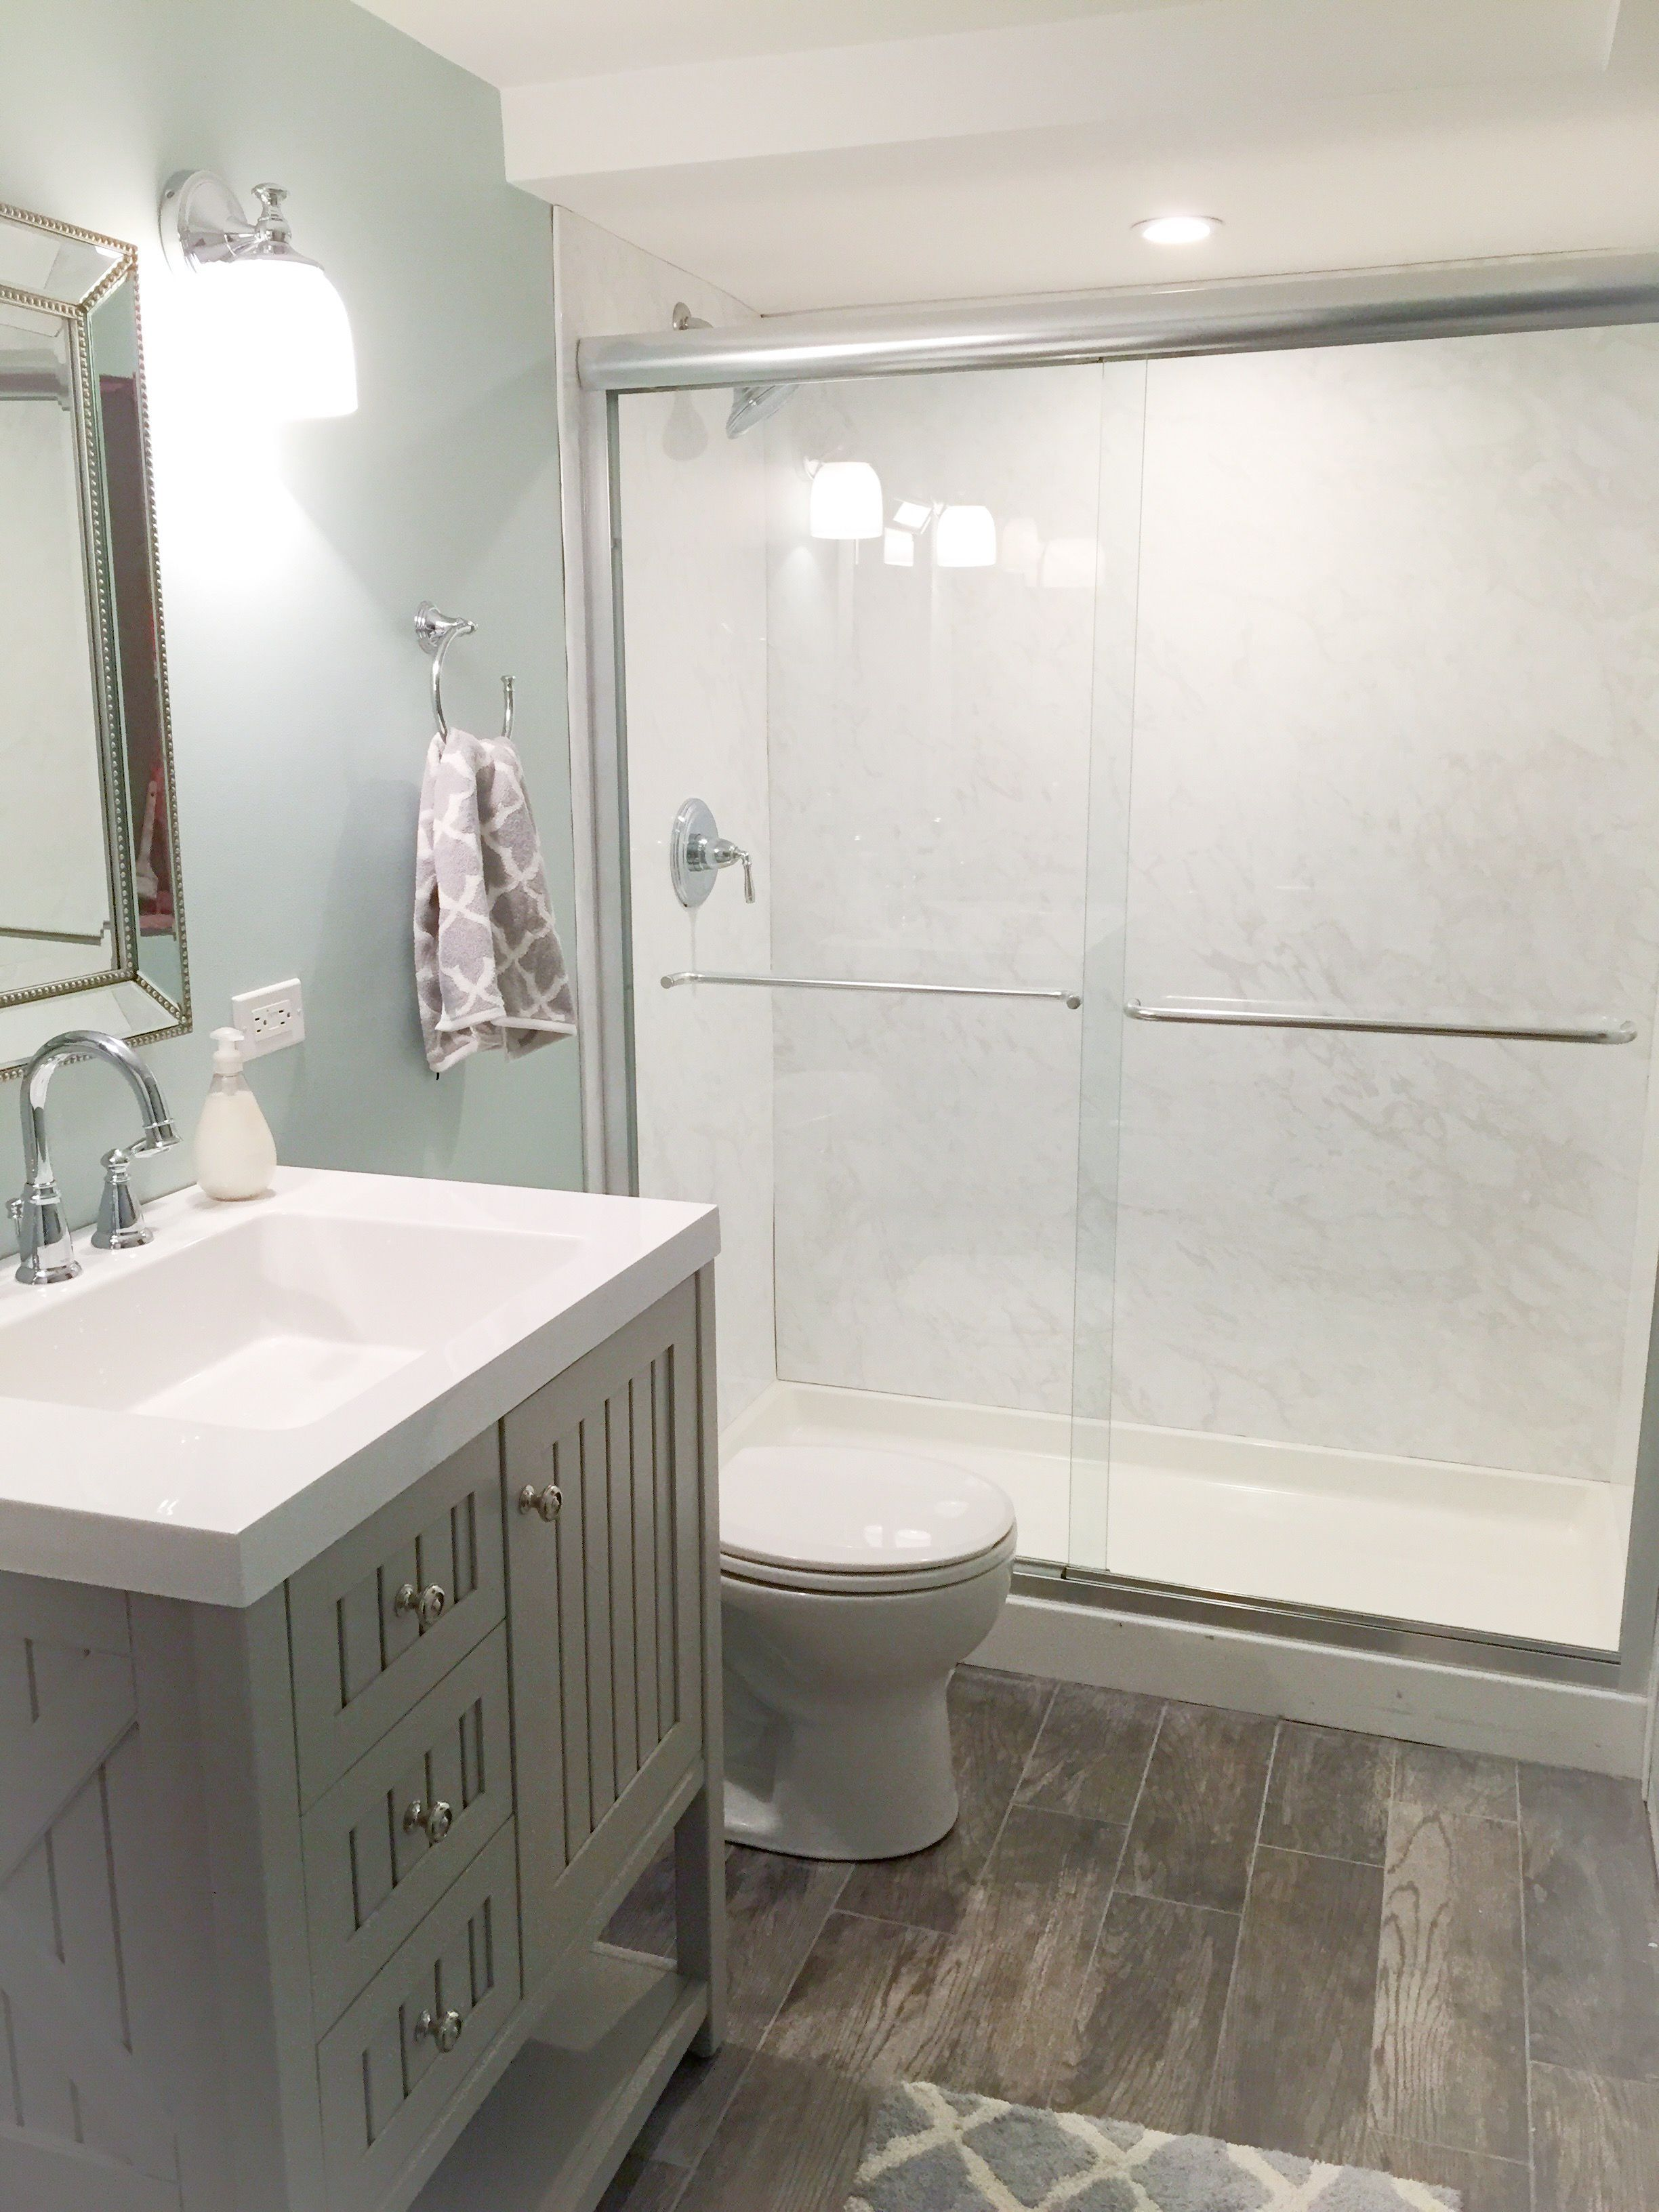 10 Awesome Bathroom Ideas Small Spaces Get Ideas Basement Bathroom Small Bathroom Small Space Bathroom